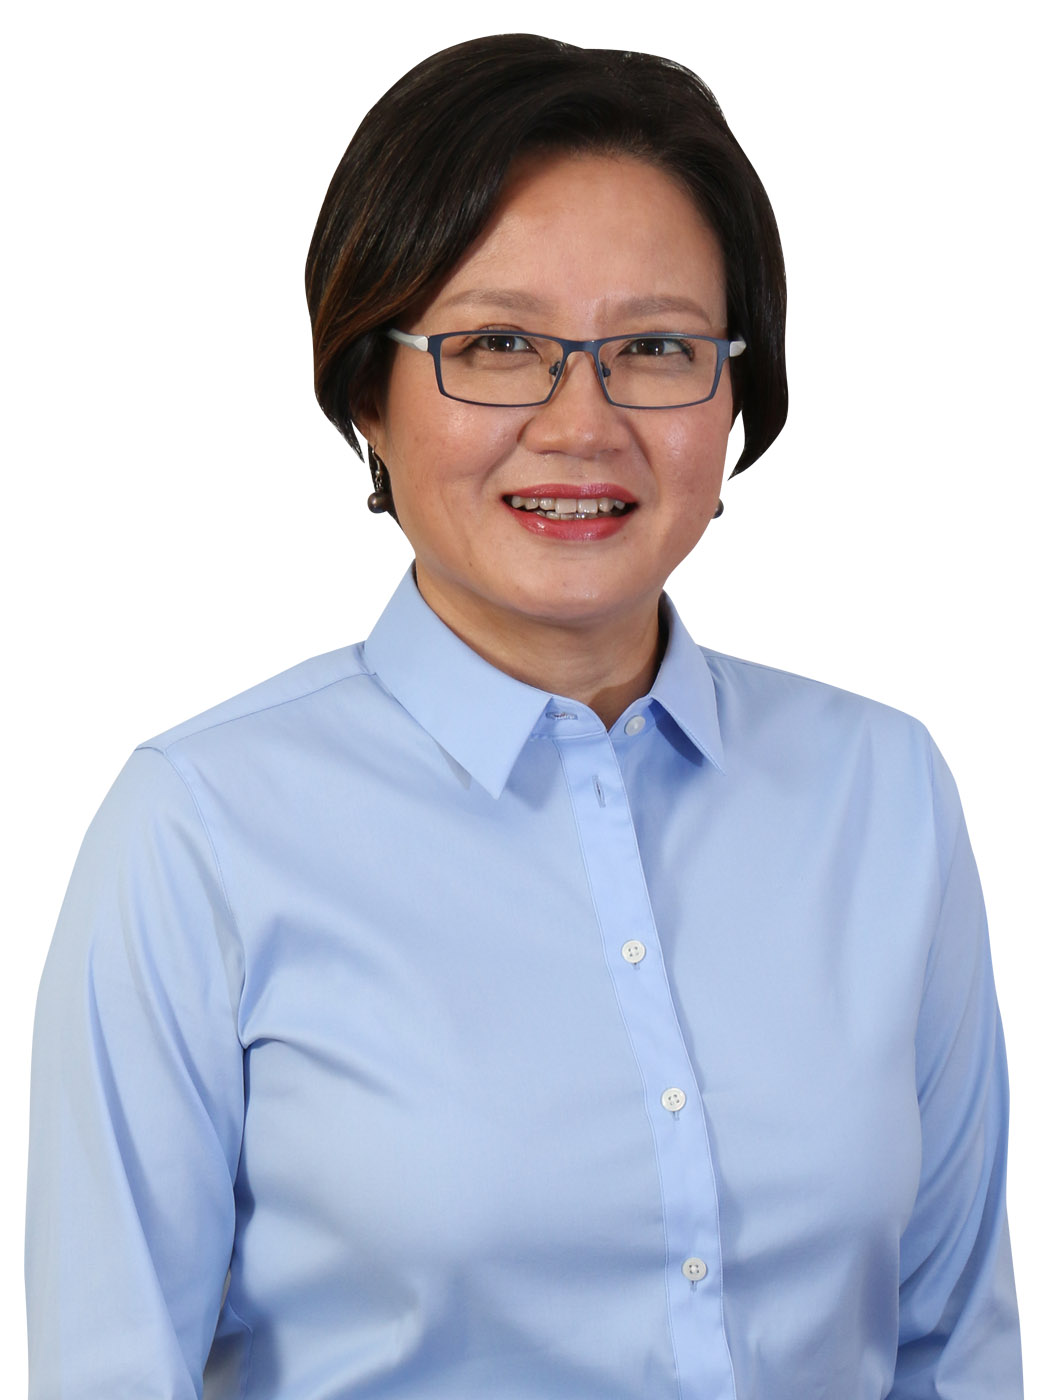 Towards a Safe, Fair and Just Society – MP Sylvia Lim's speech (Debate on President's Address 2014)